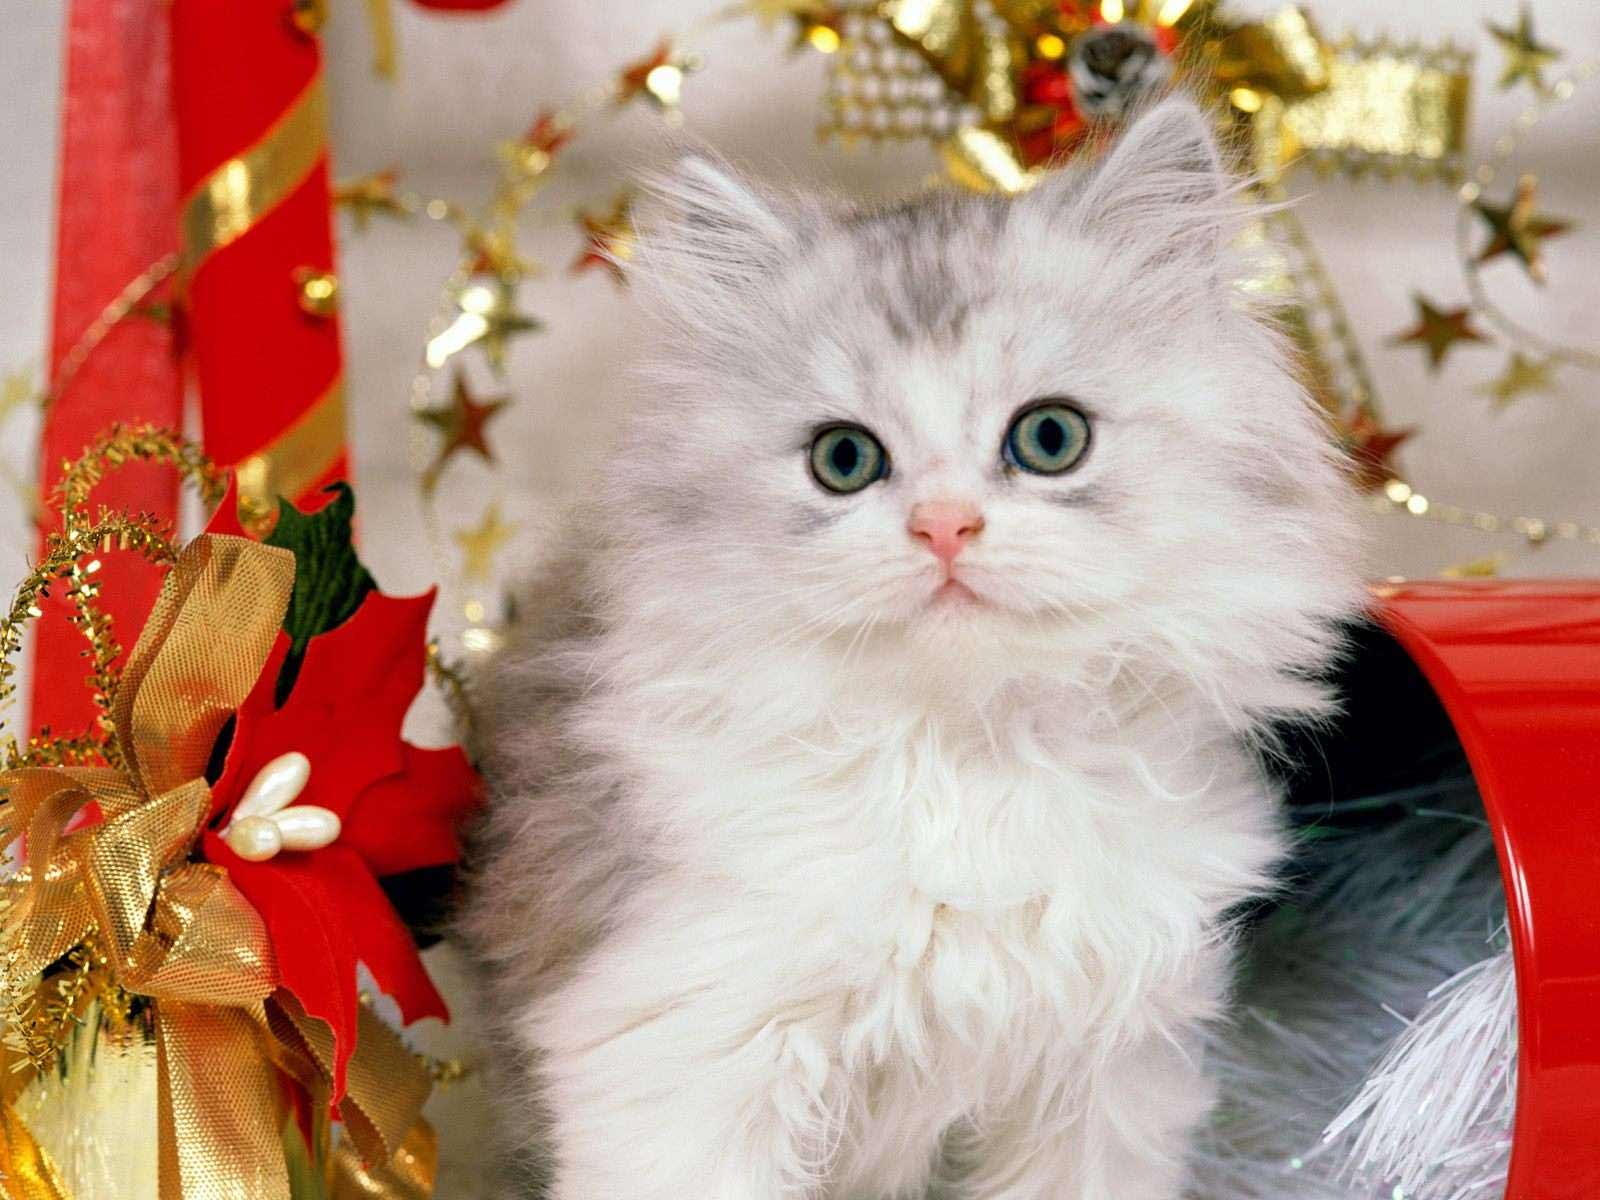 Cute Christmas Kitten Wallpapers Christian Wallpapers 1600x1200